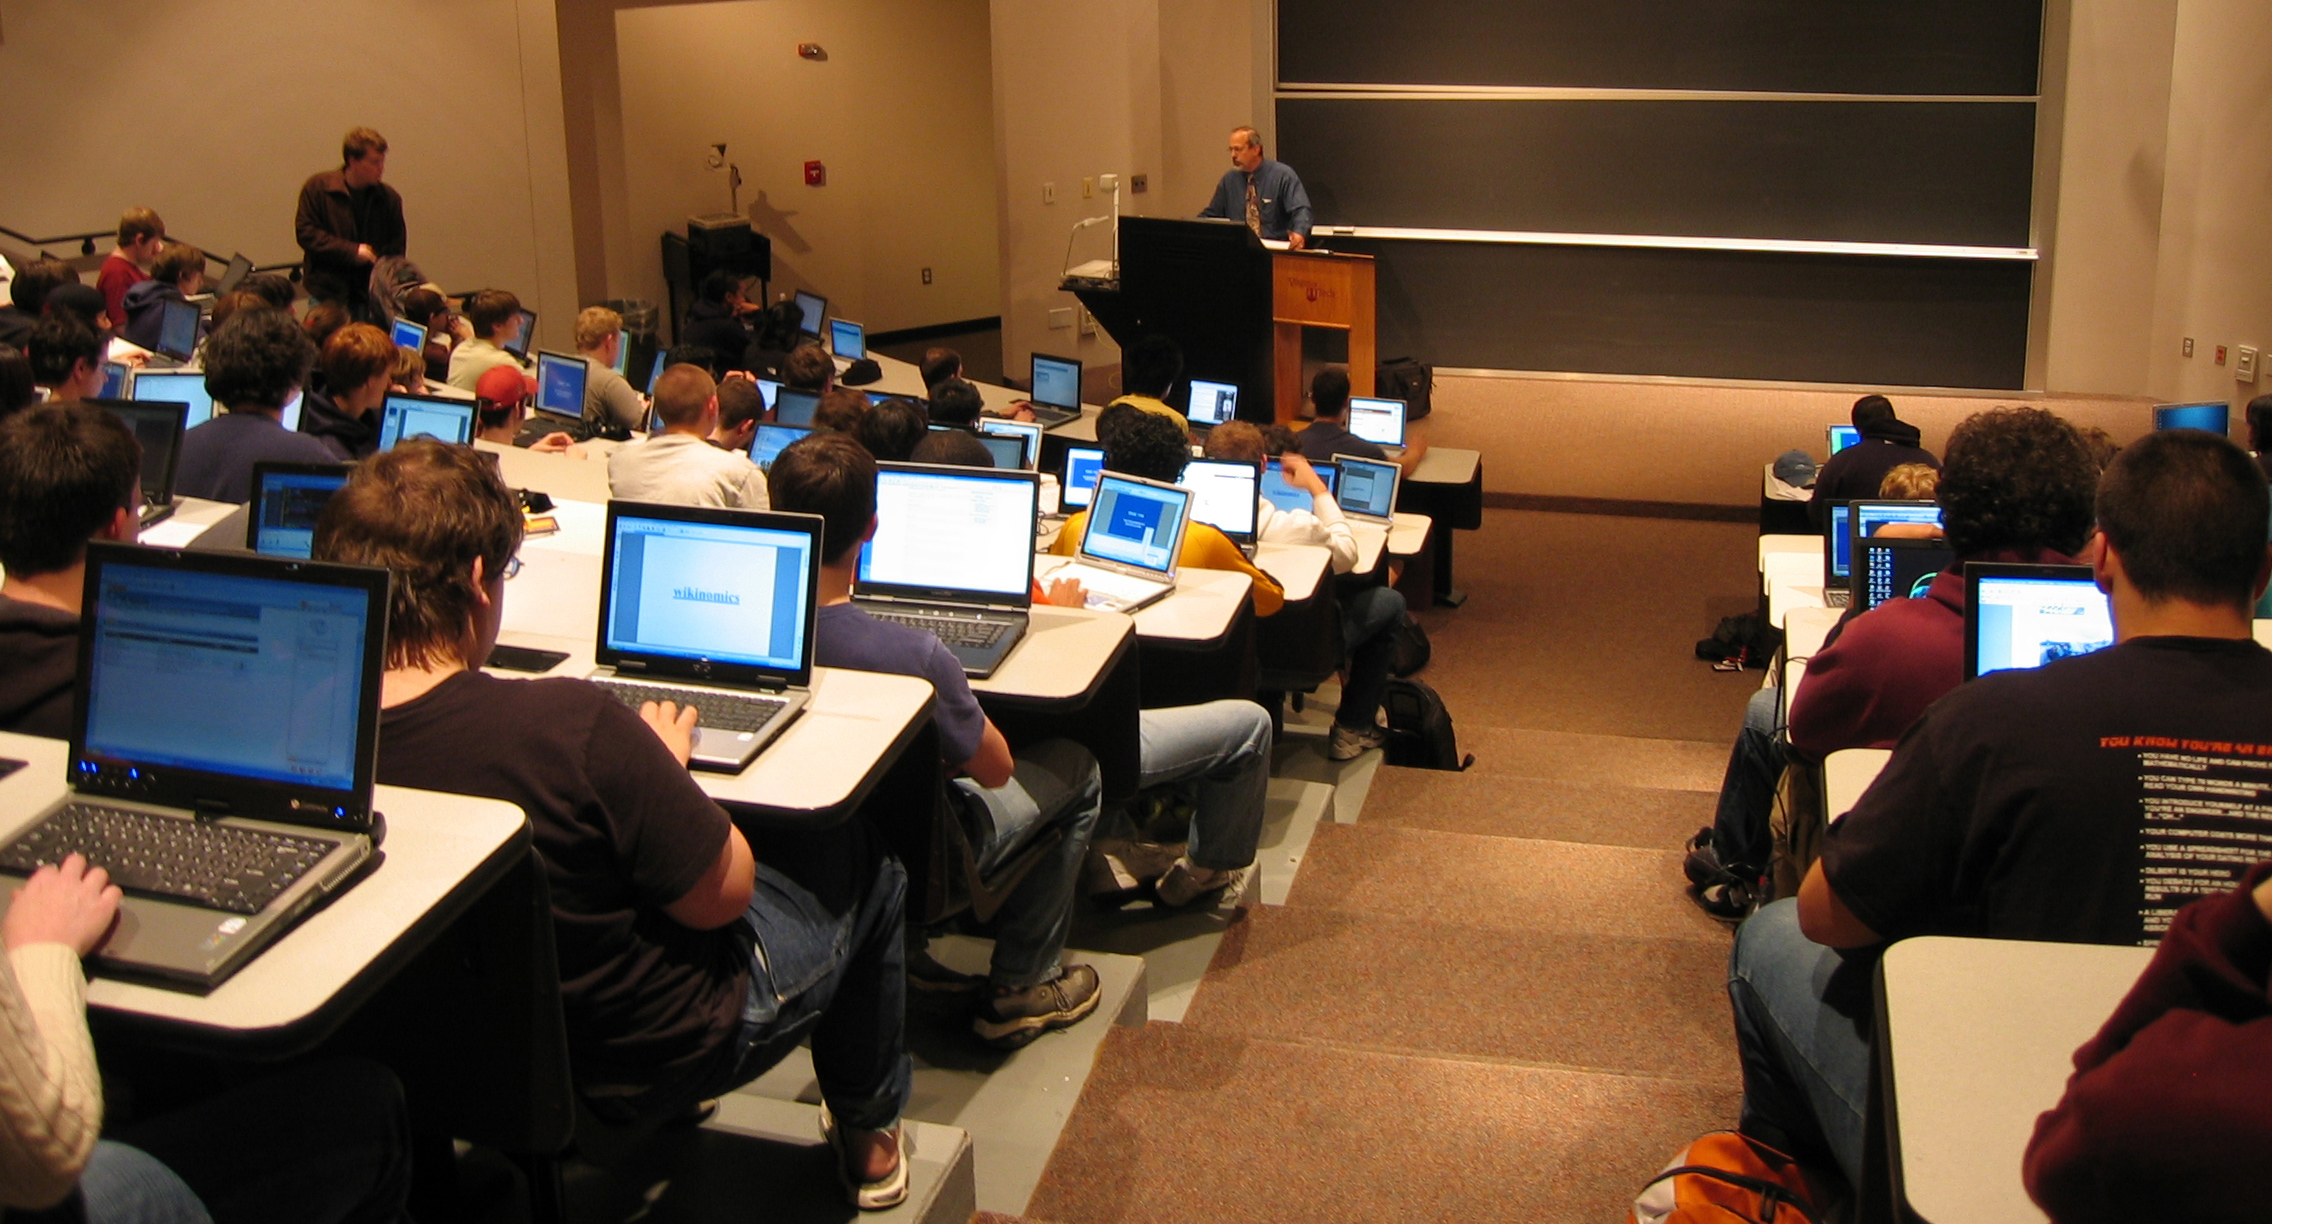 Modern Technologies Used In Classroom ~ New educational software links students in wireless